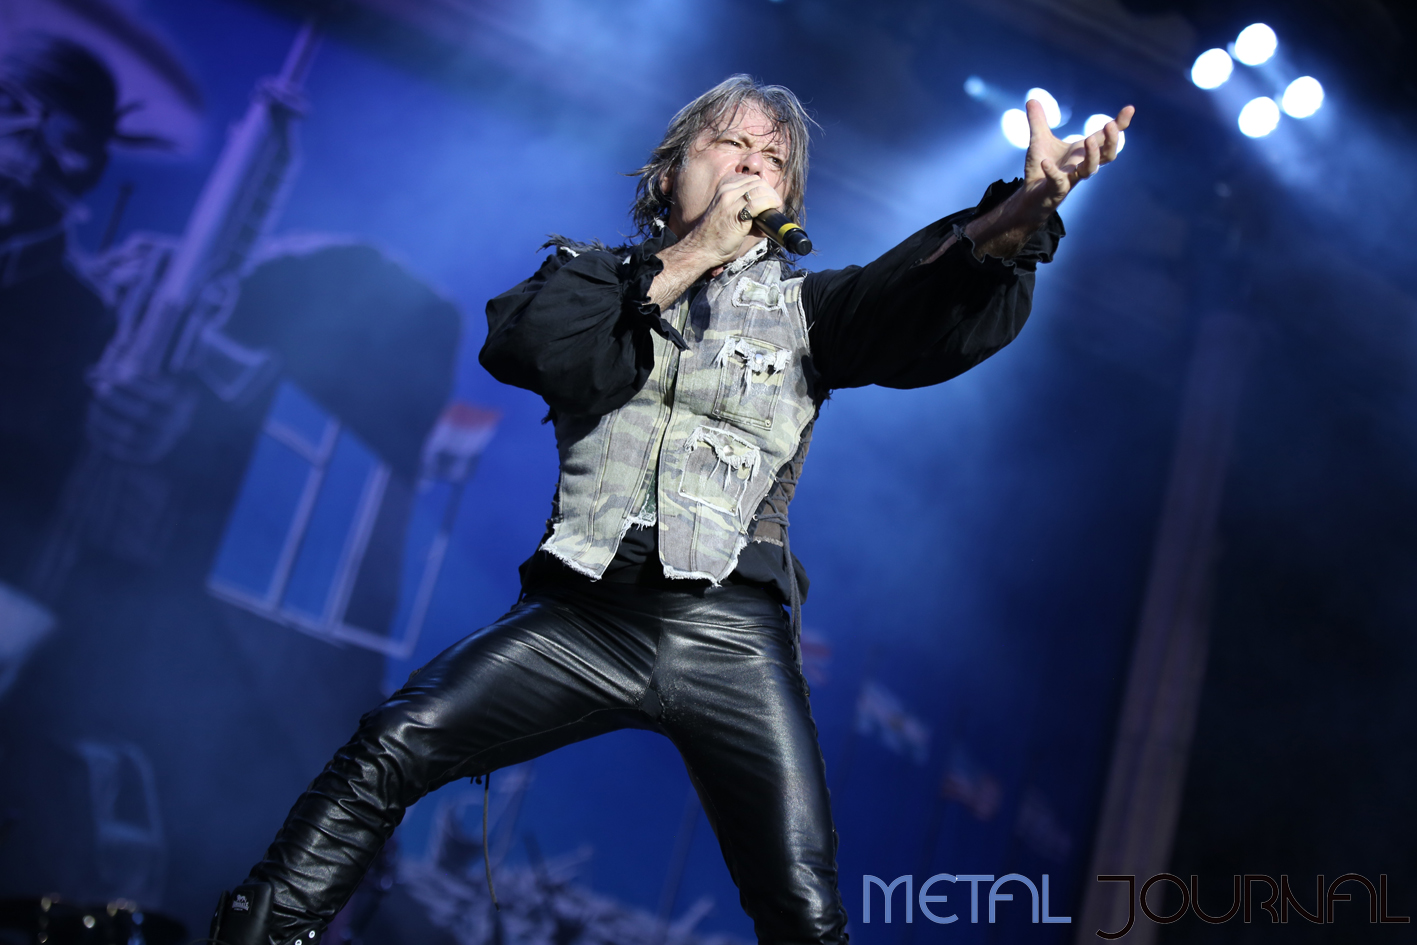 iron maiden - wanda metropolitano metal journal 2018 pic 13